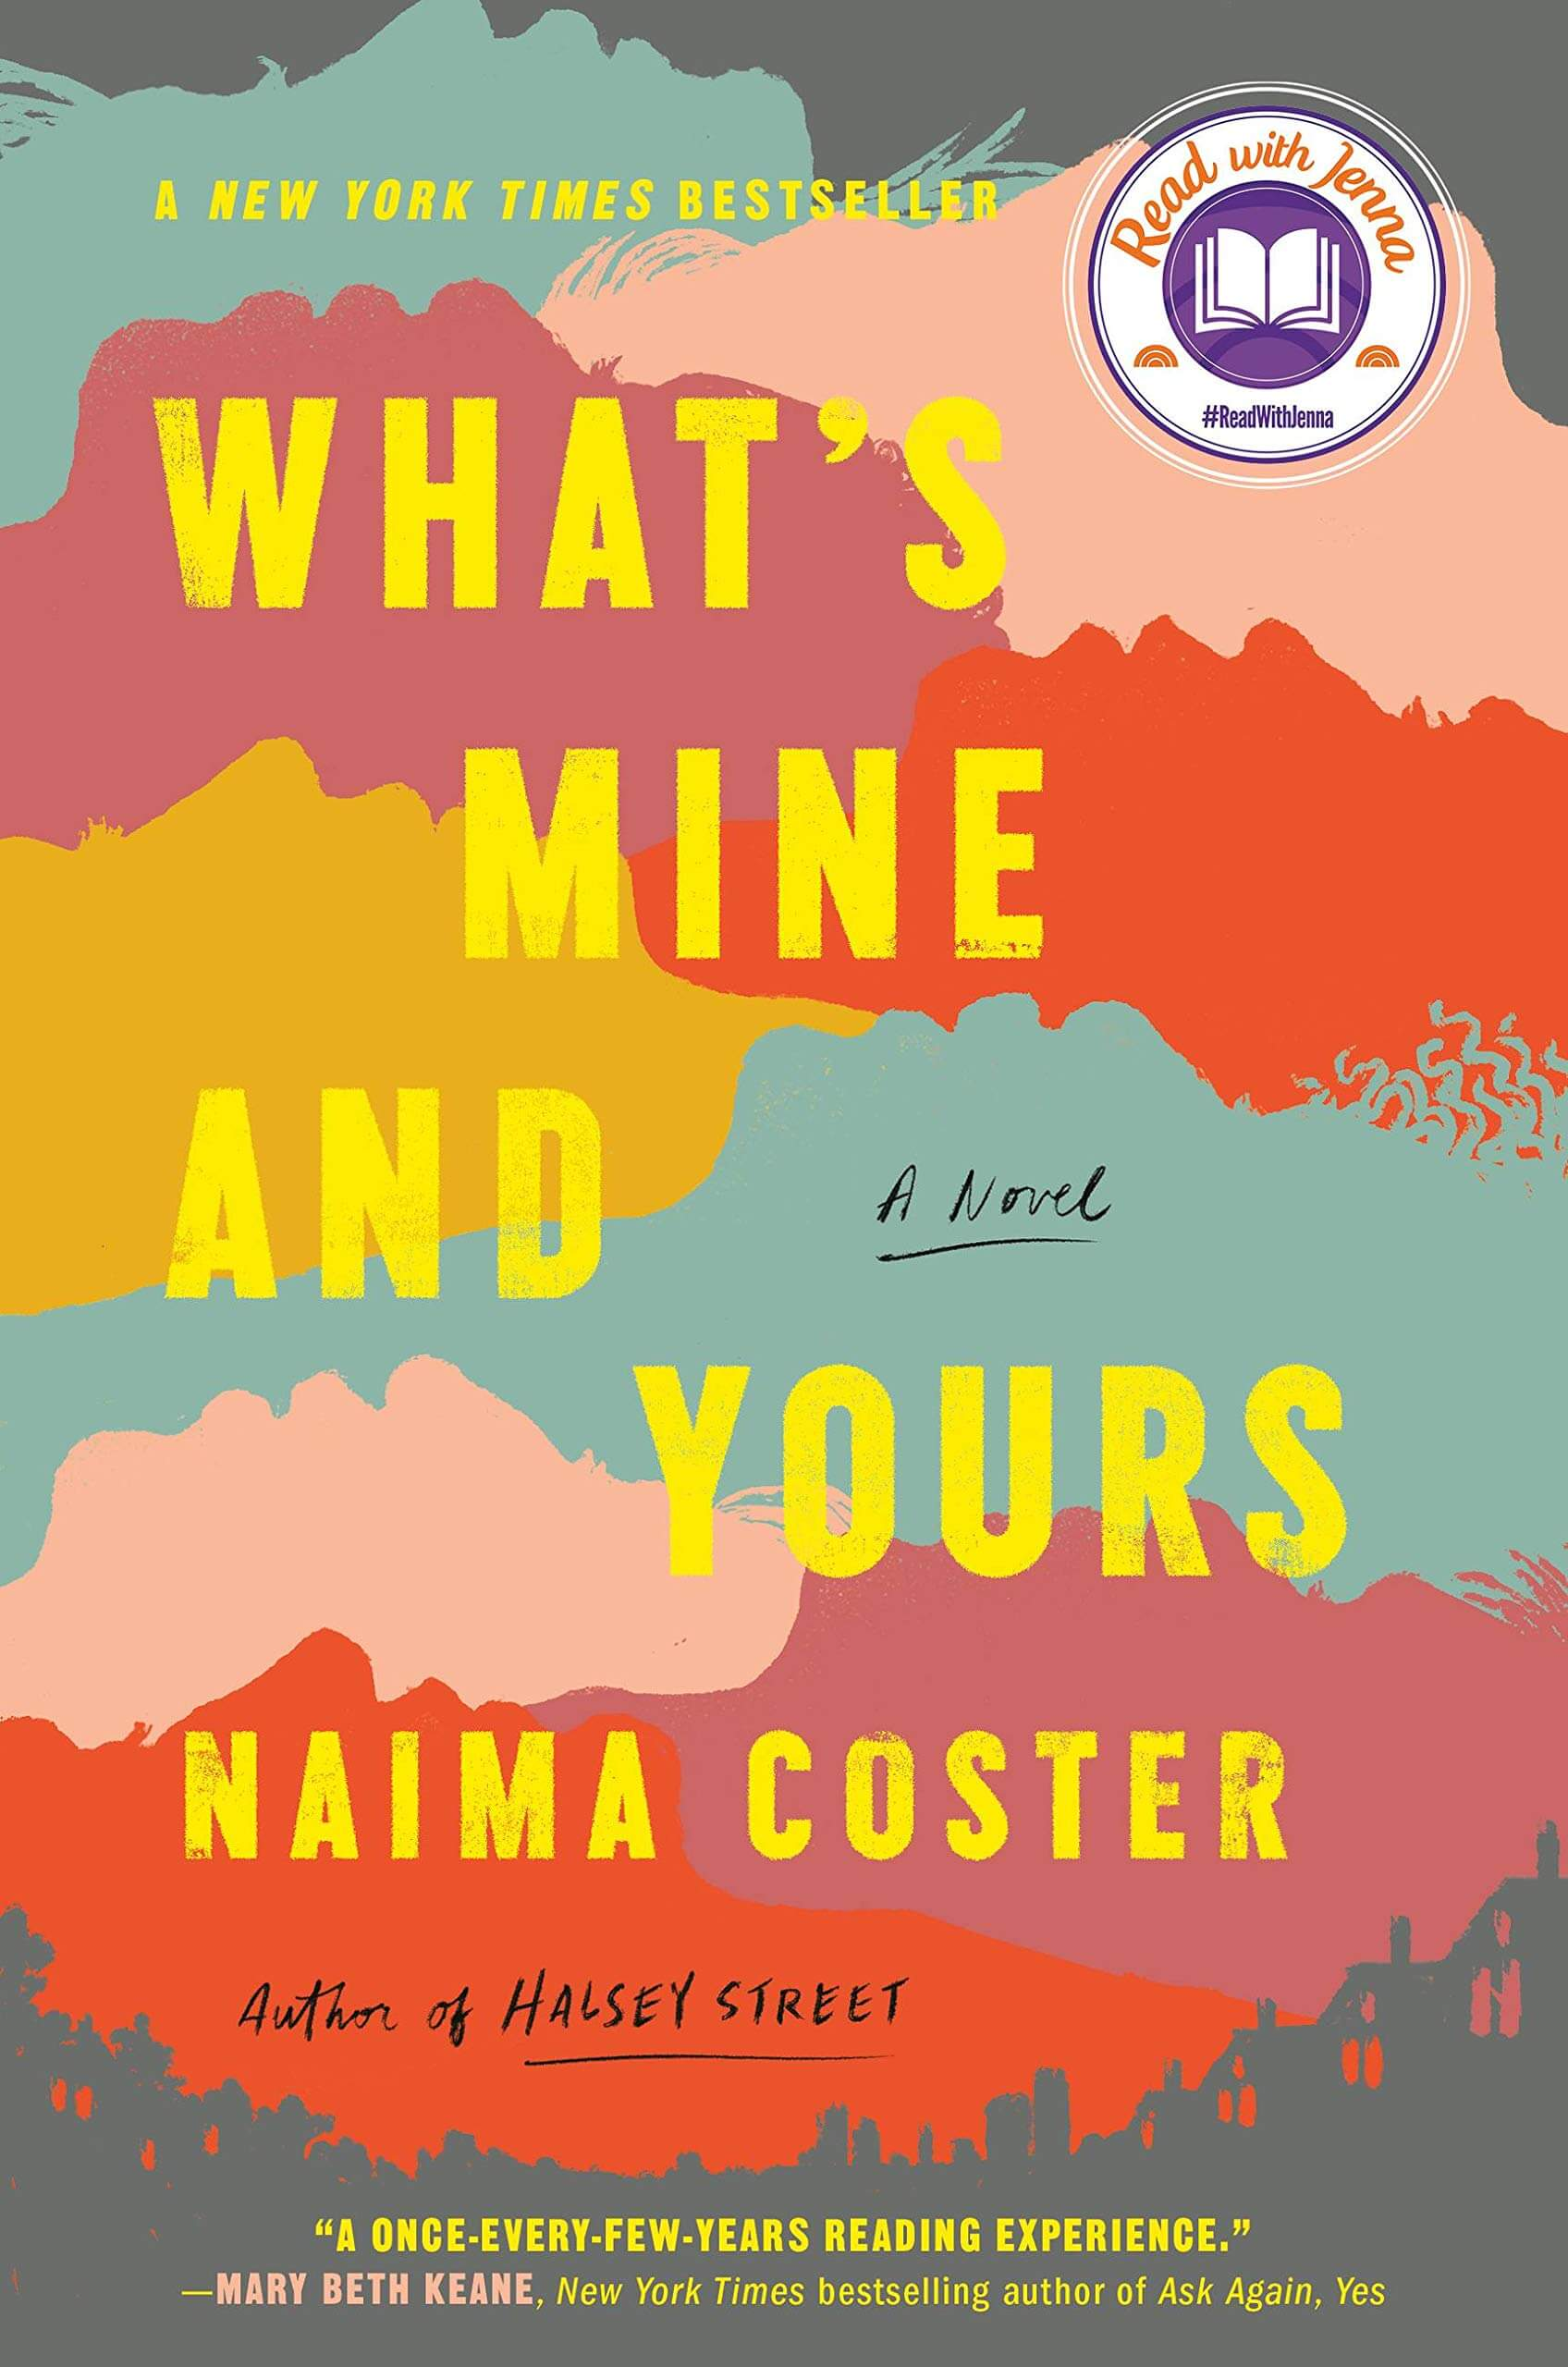 What's Mine and Yours book cover image